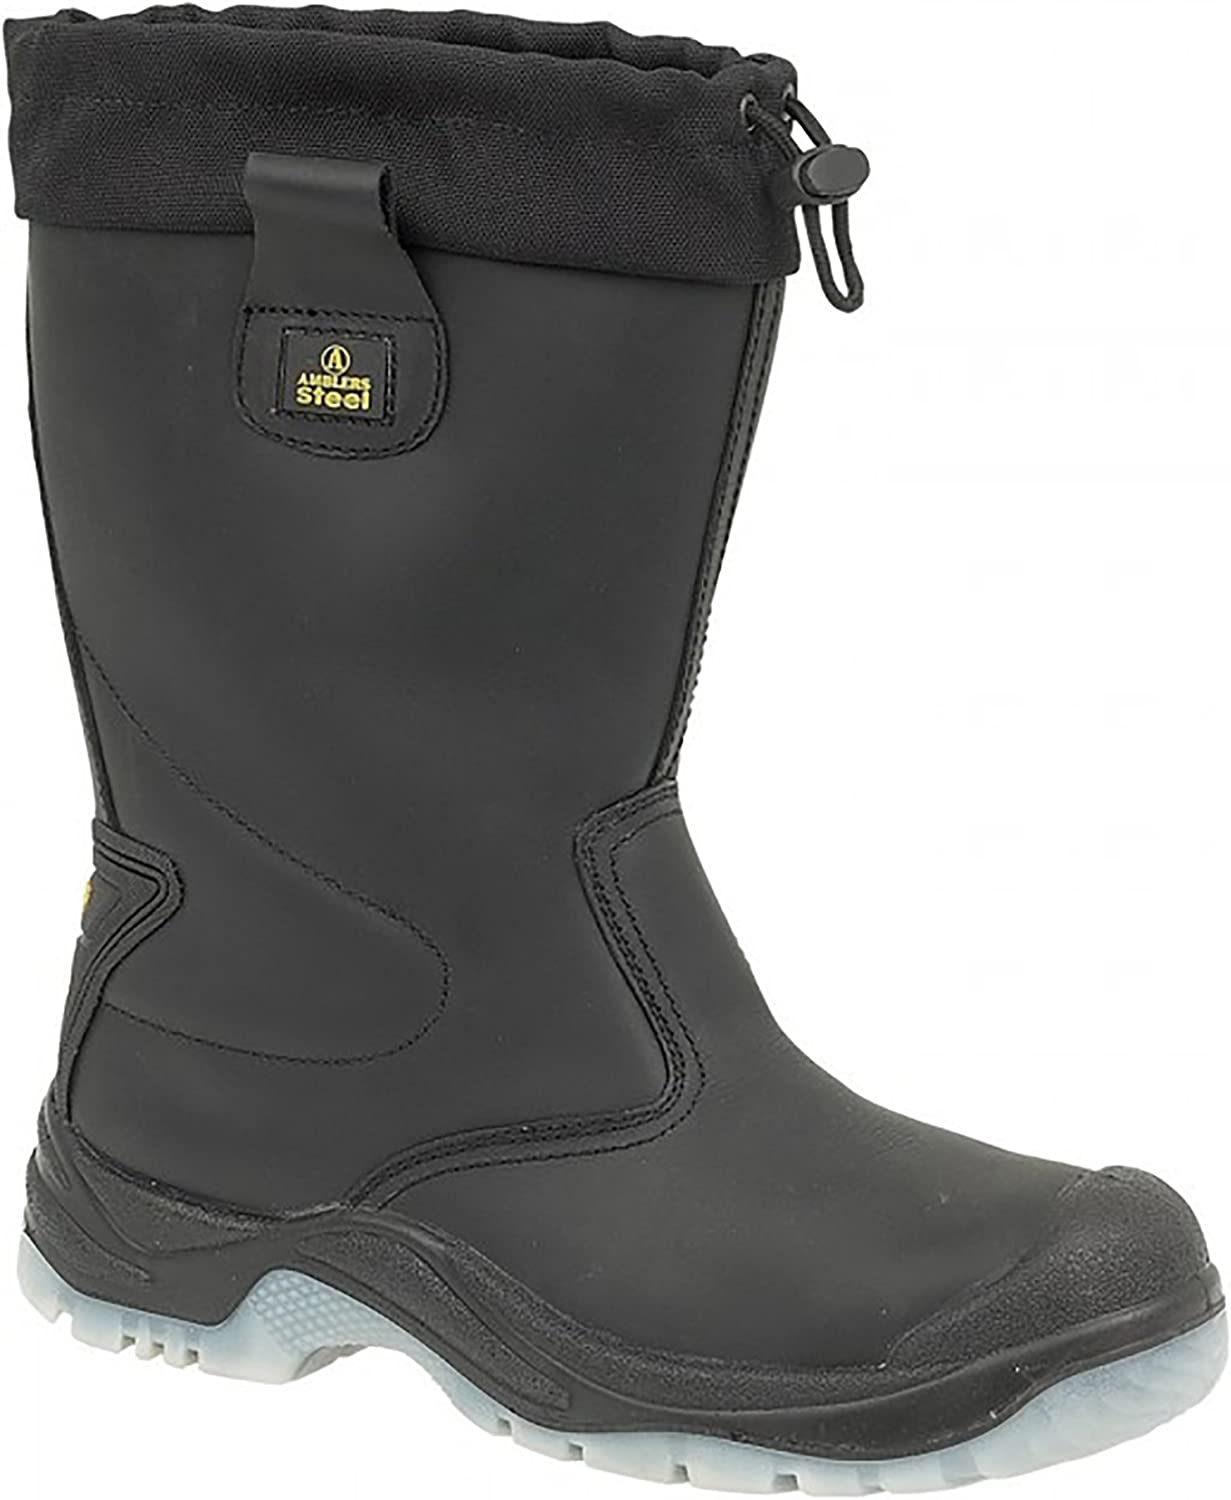 Amblers Steel FS209 Safety Pull On   Womens Ladies Boots   Riggers Safety (8 US) (Black)